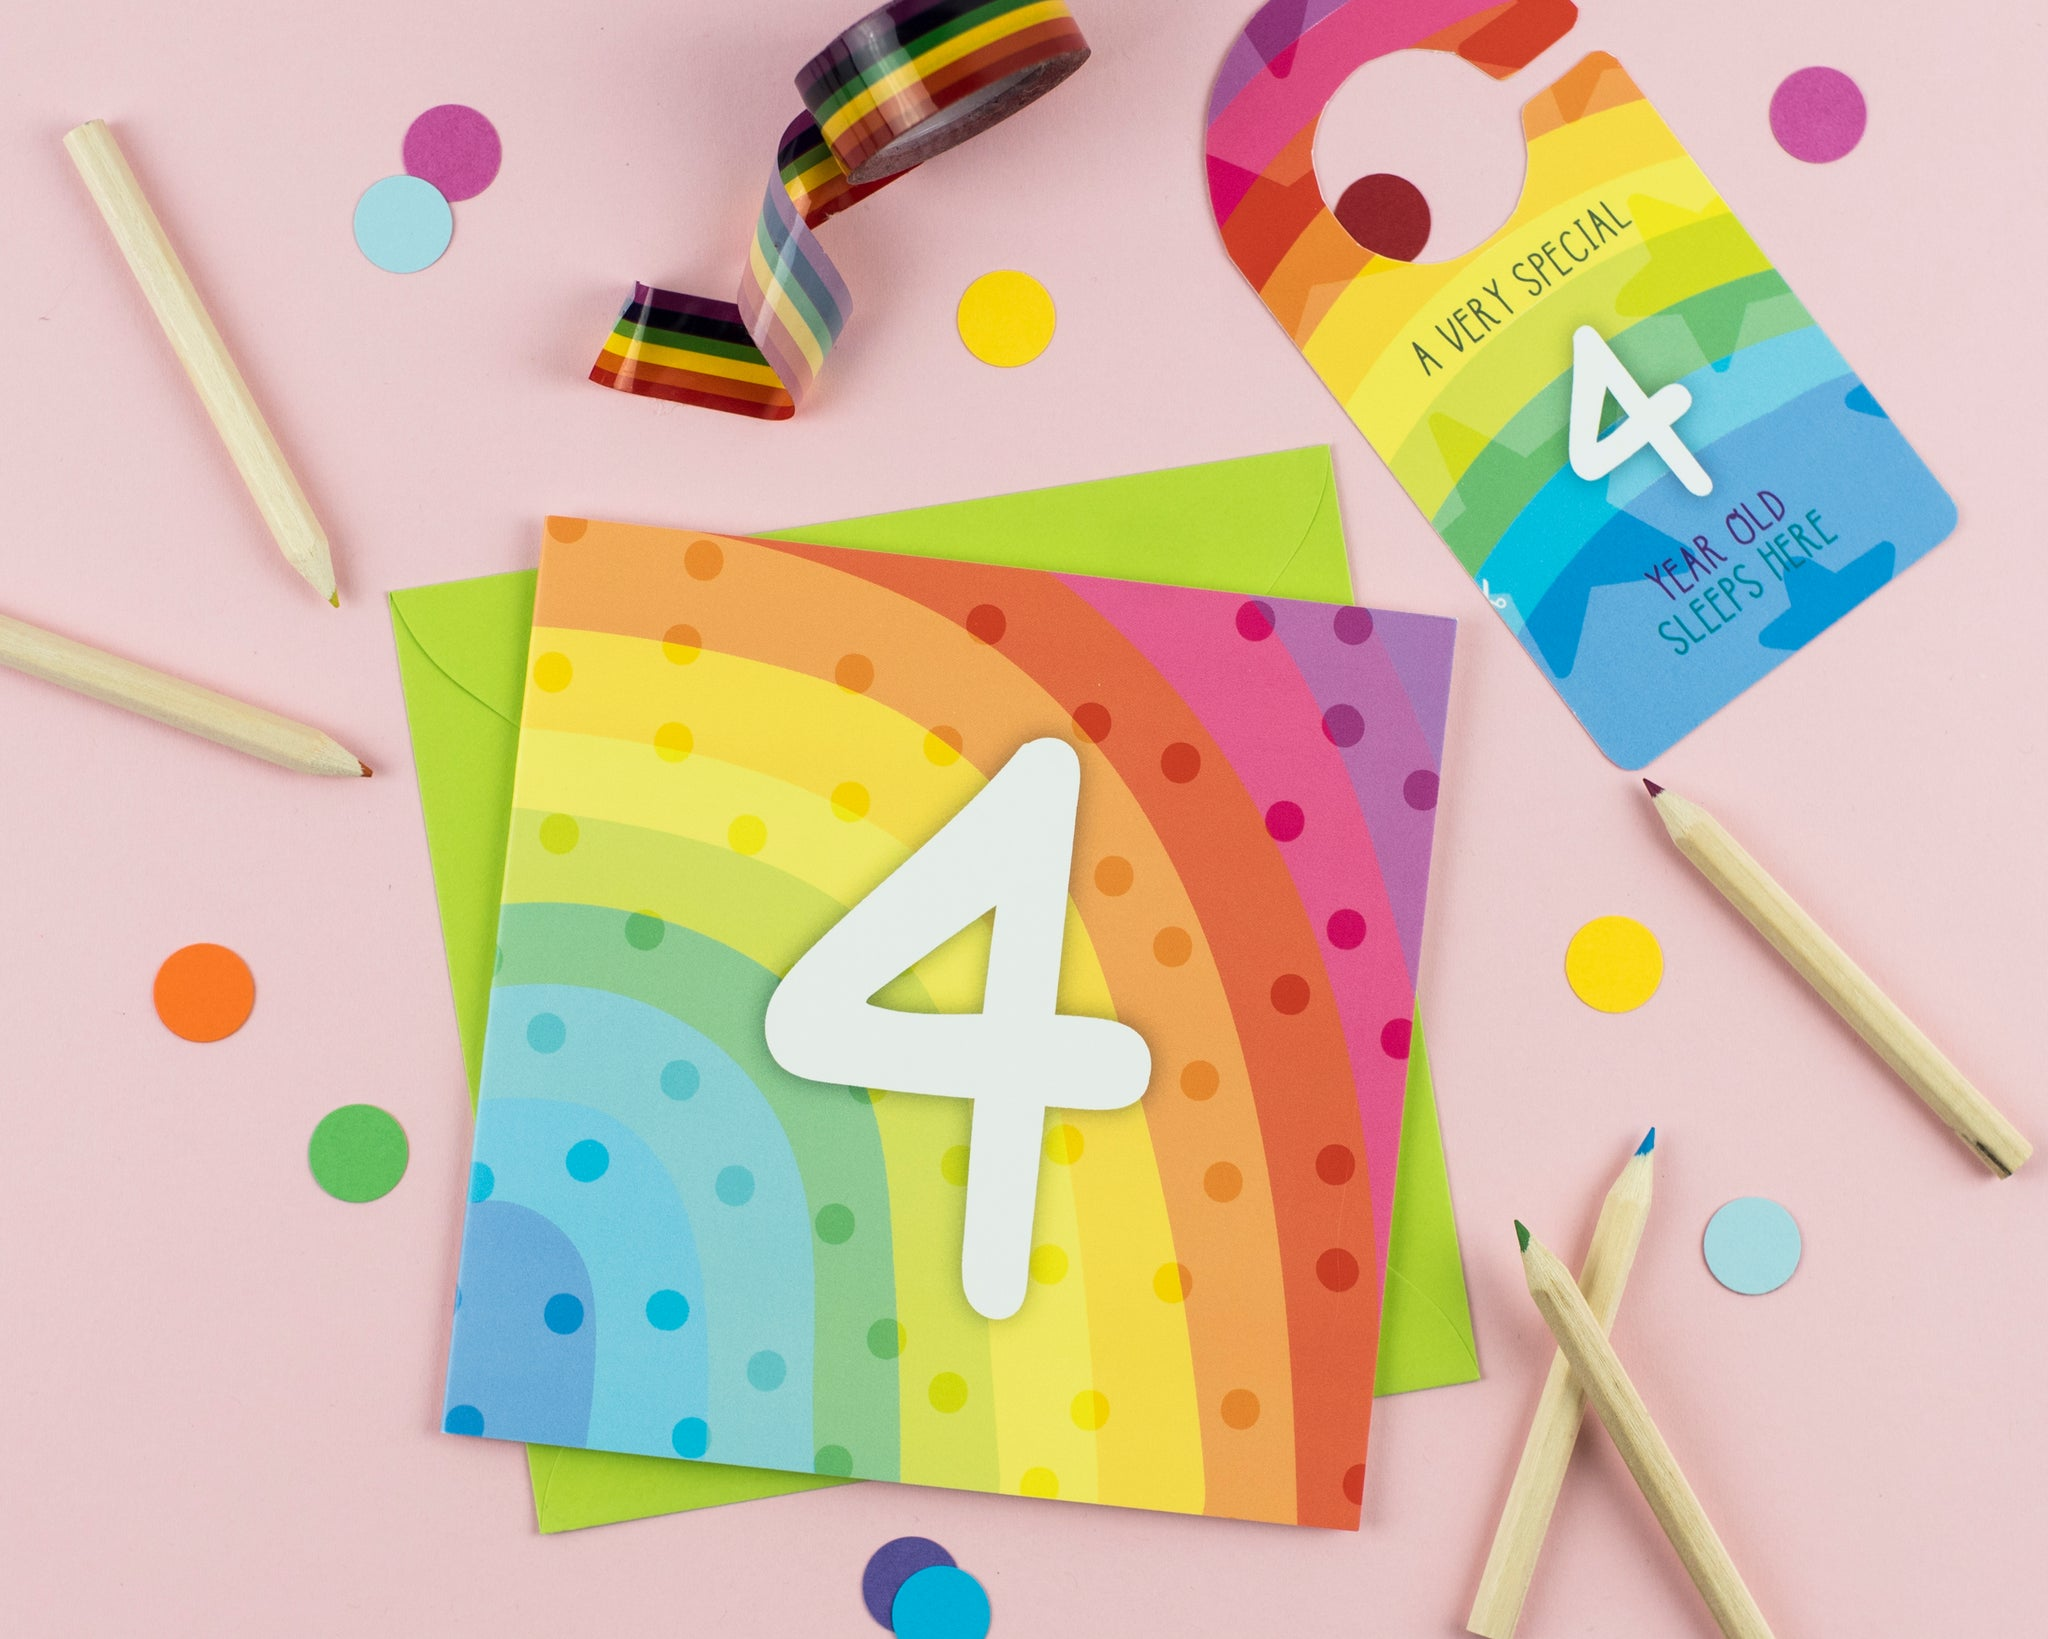 Four year old birthday card with Cut out crafty activity - Two For Joy Illustration